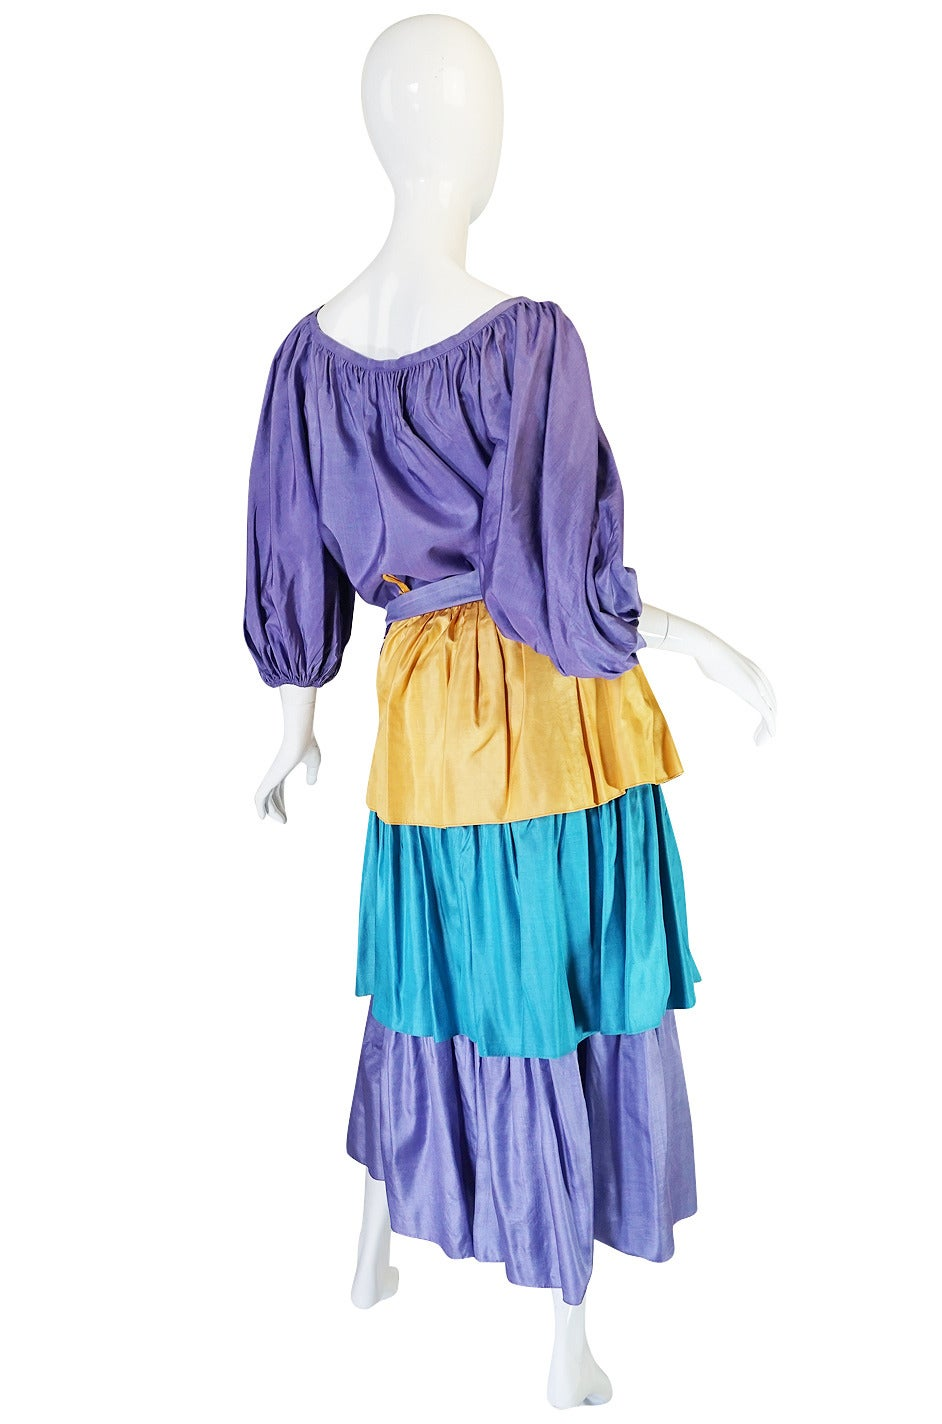 This stunning Yves Saint Laurent set clearly illustrates his love and fascination with all things gypsy, bohemian and peasant in feel while the color and fabric seem to give a nod to his famous love of color. This is like the perfect melding of the